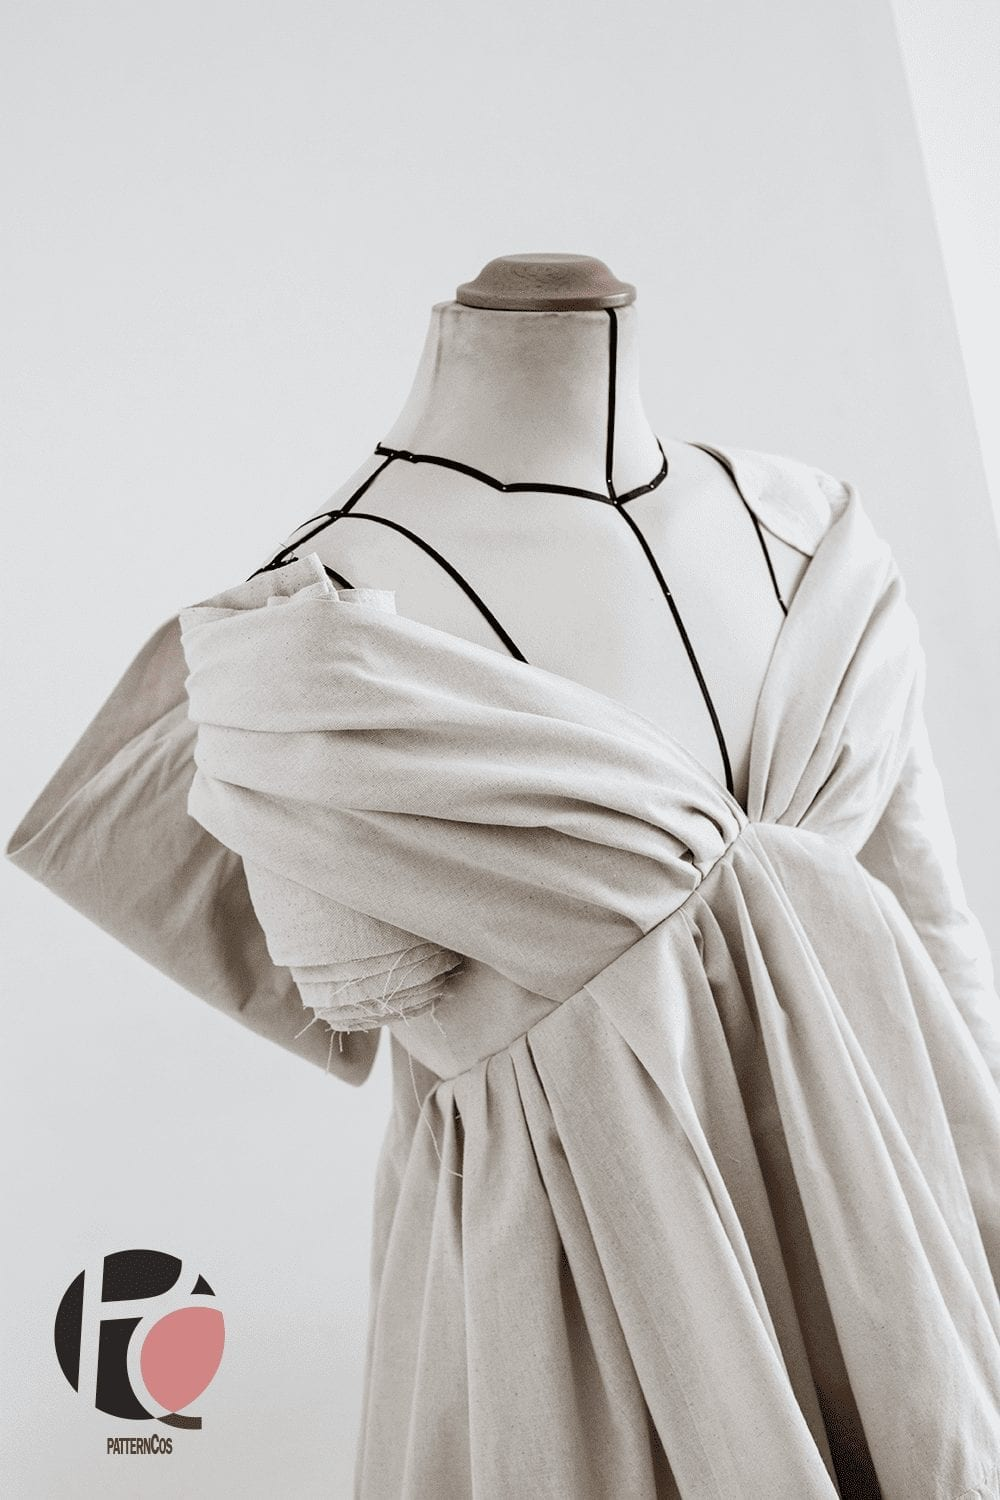 Marc_Jacobs_dress_inspired_photo_3_PatternCos_Academia